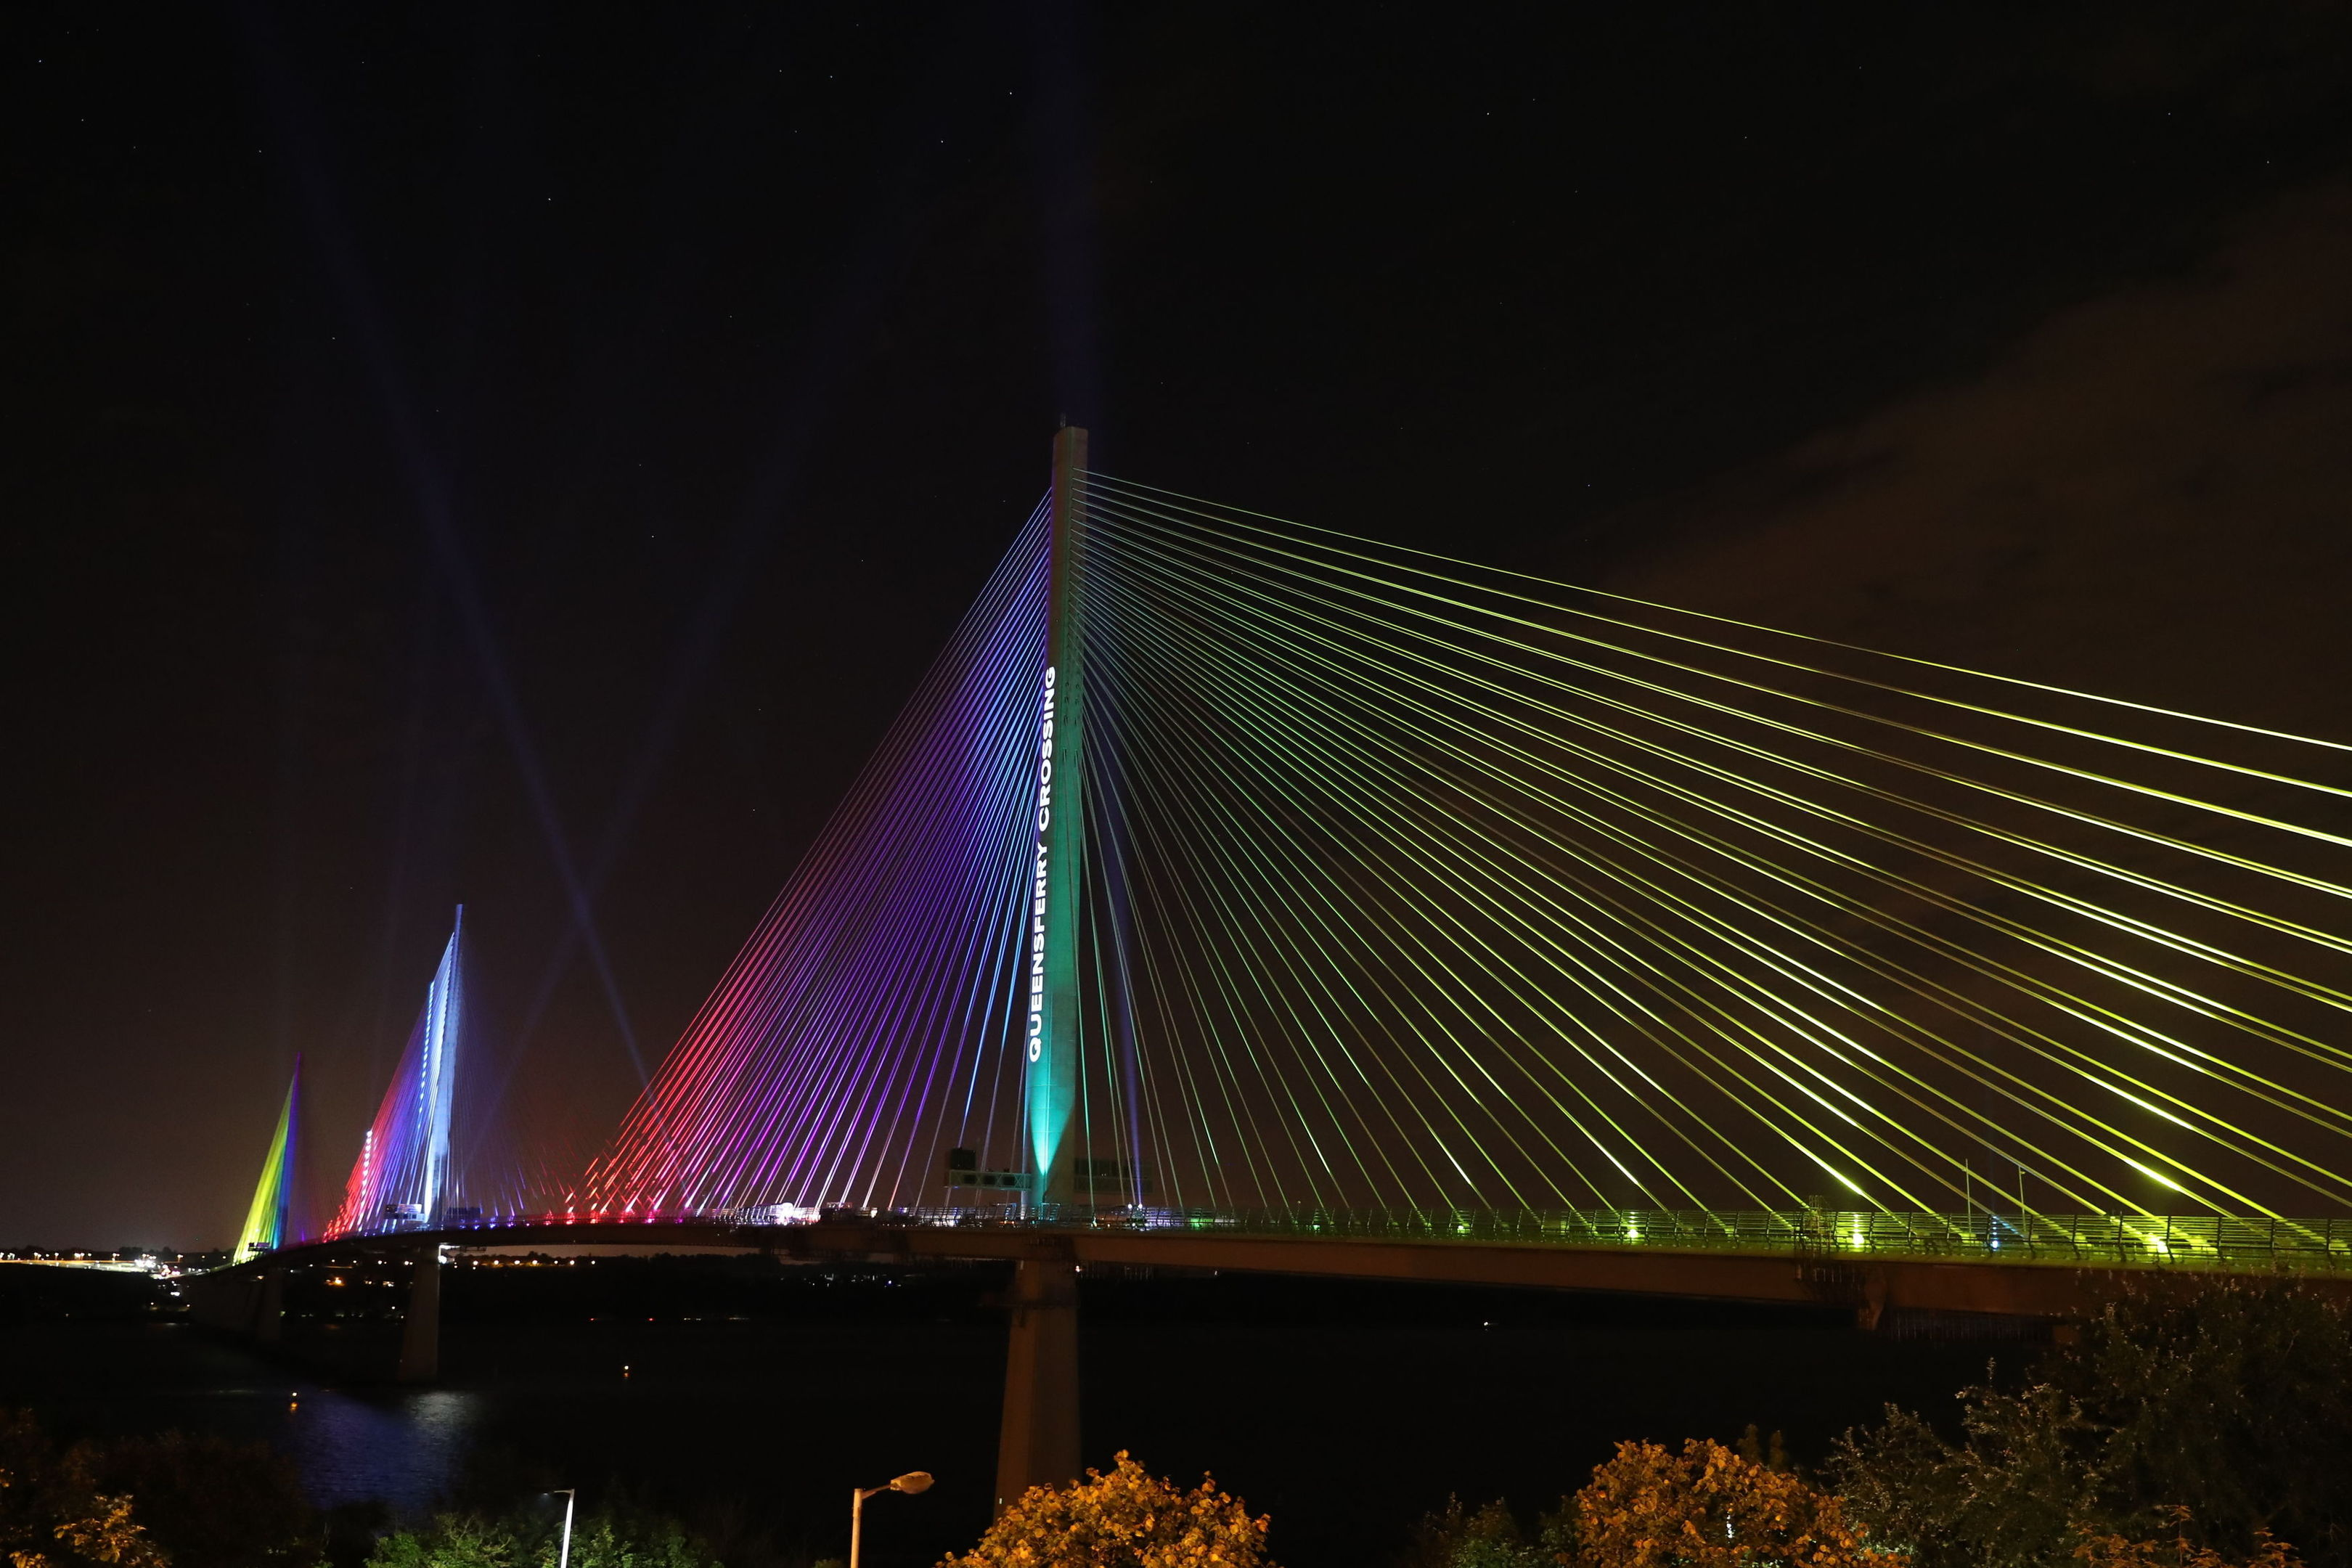 A view of the new Queensferry Crossing seen from North Queensferry, Scotland, as it is lit up during a ceremonial handover from the contractors to the Scottish Government ahead of it's official opening next month by Queen Elizabeth II on September 4. (Andrew Milligan/PA Wire)